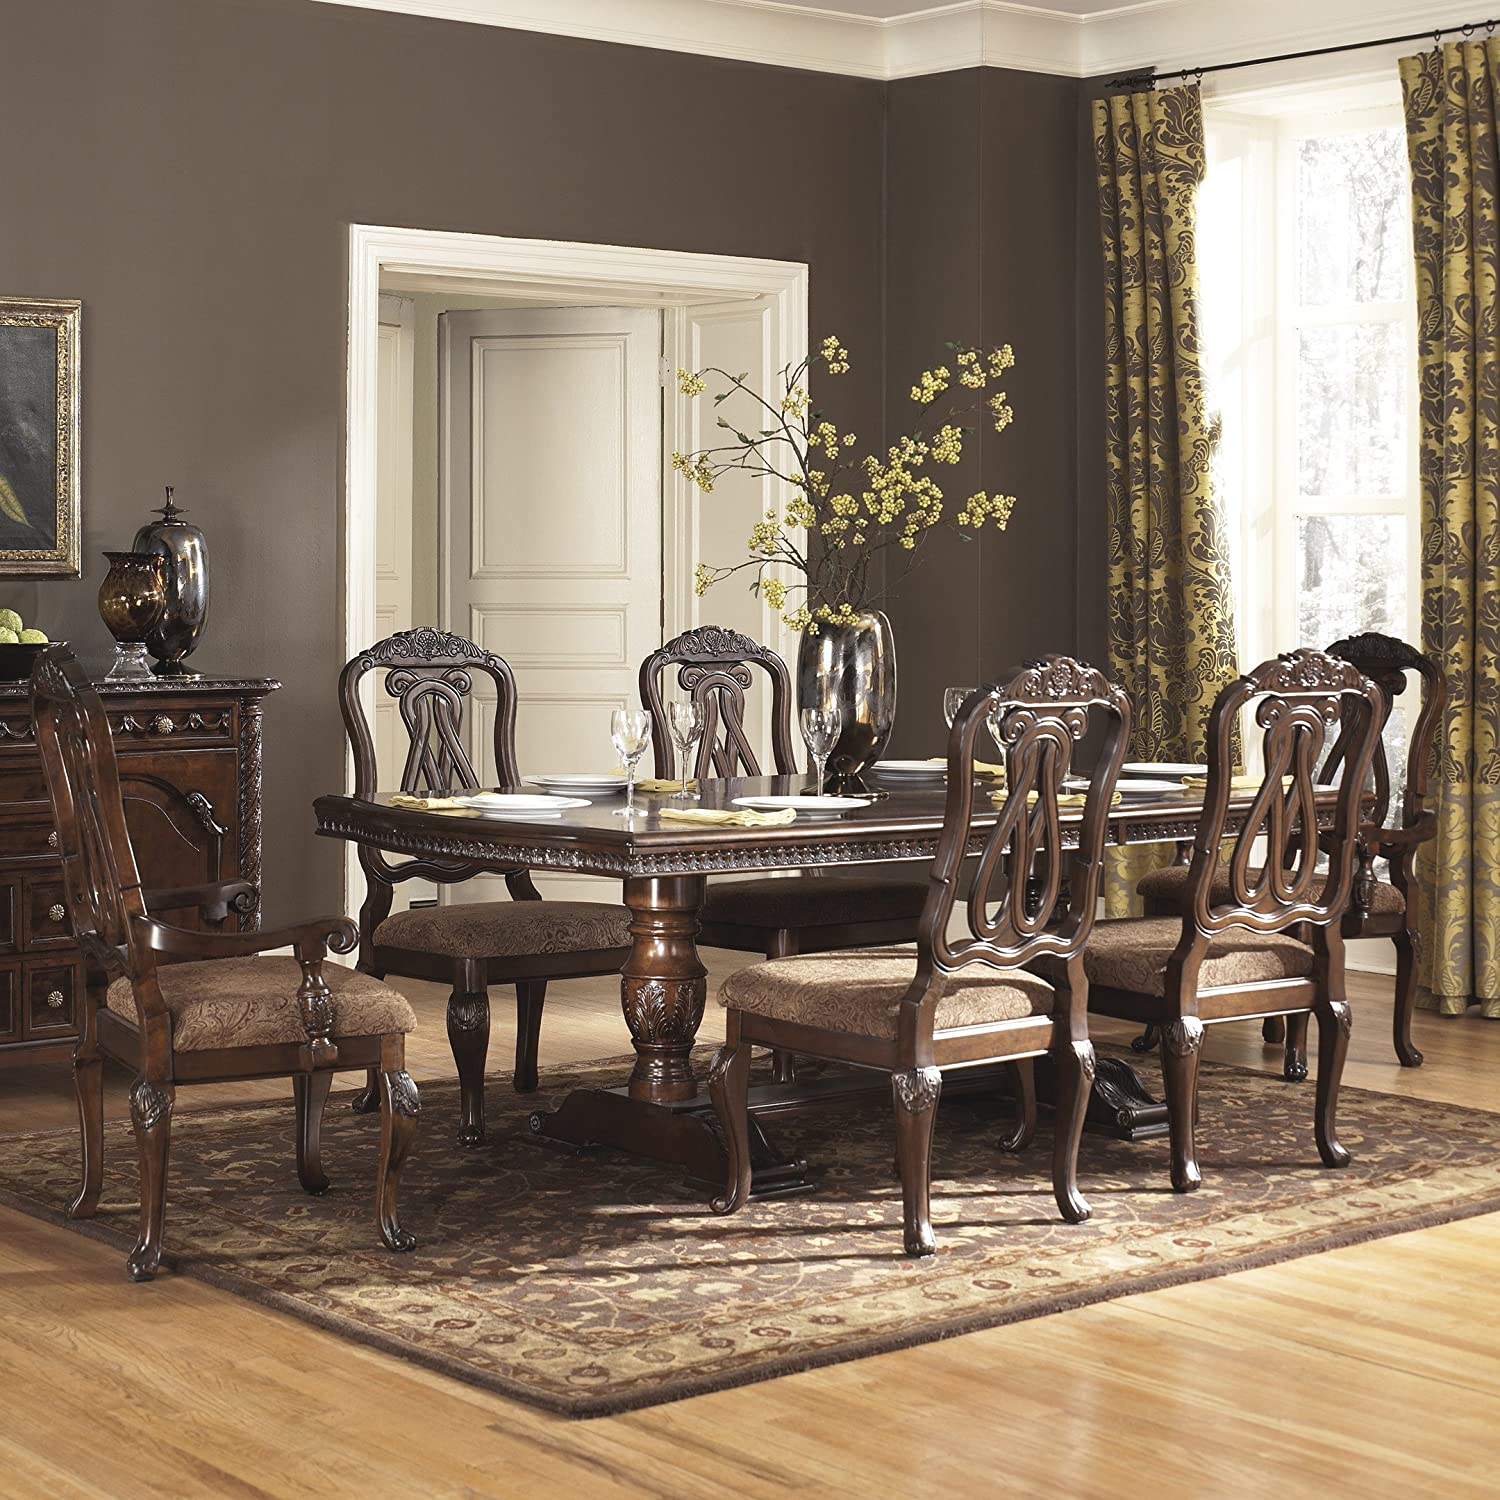 Ashley Furniture Kitchen Table And Chairs Amazoncom Ashley North Shore 7 Piece Wooden Dining Table Set